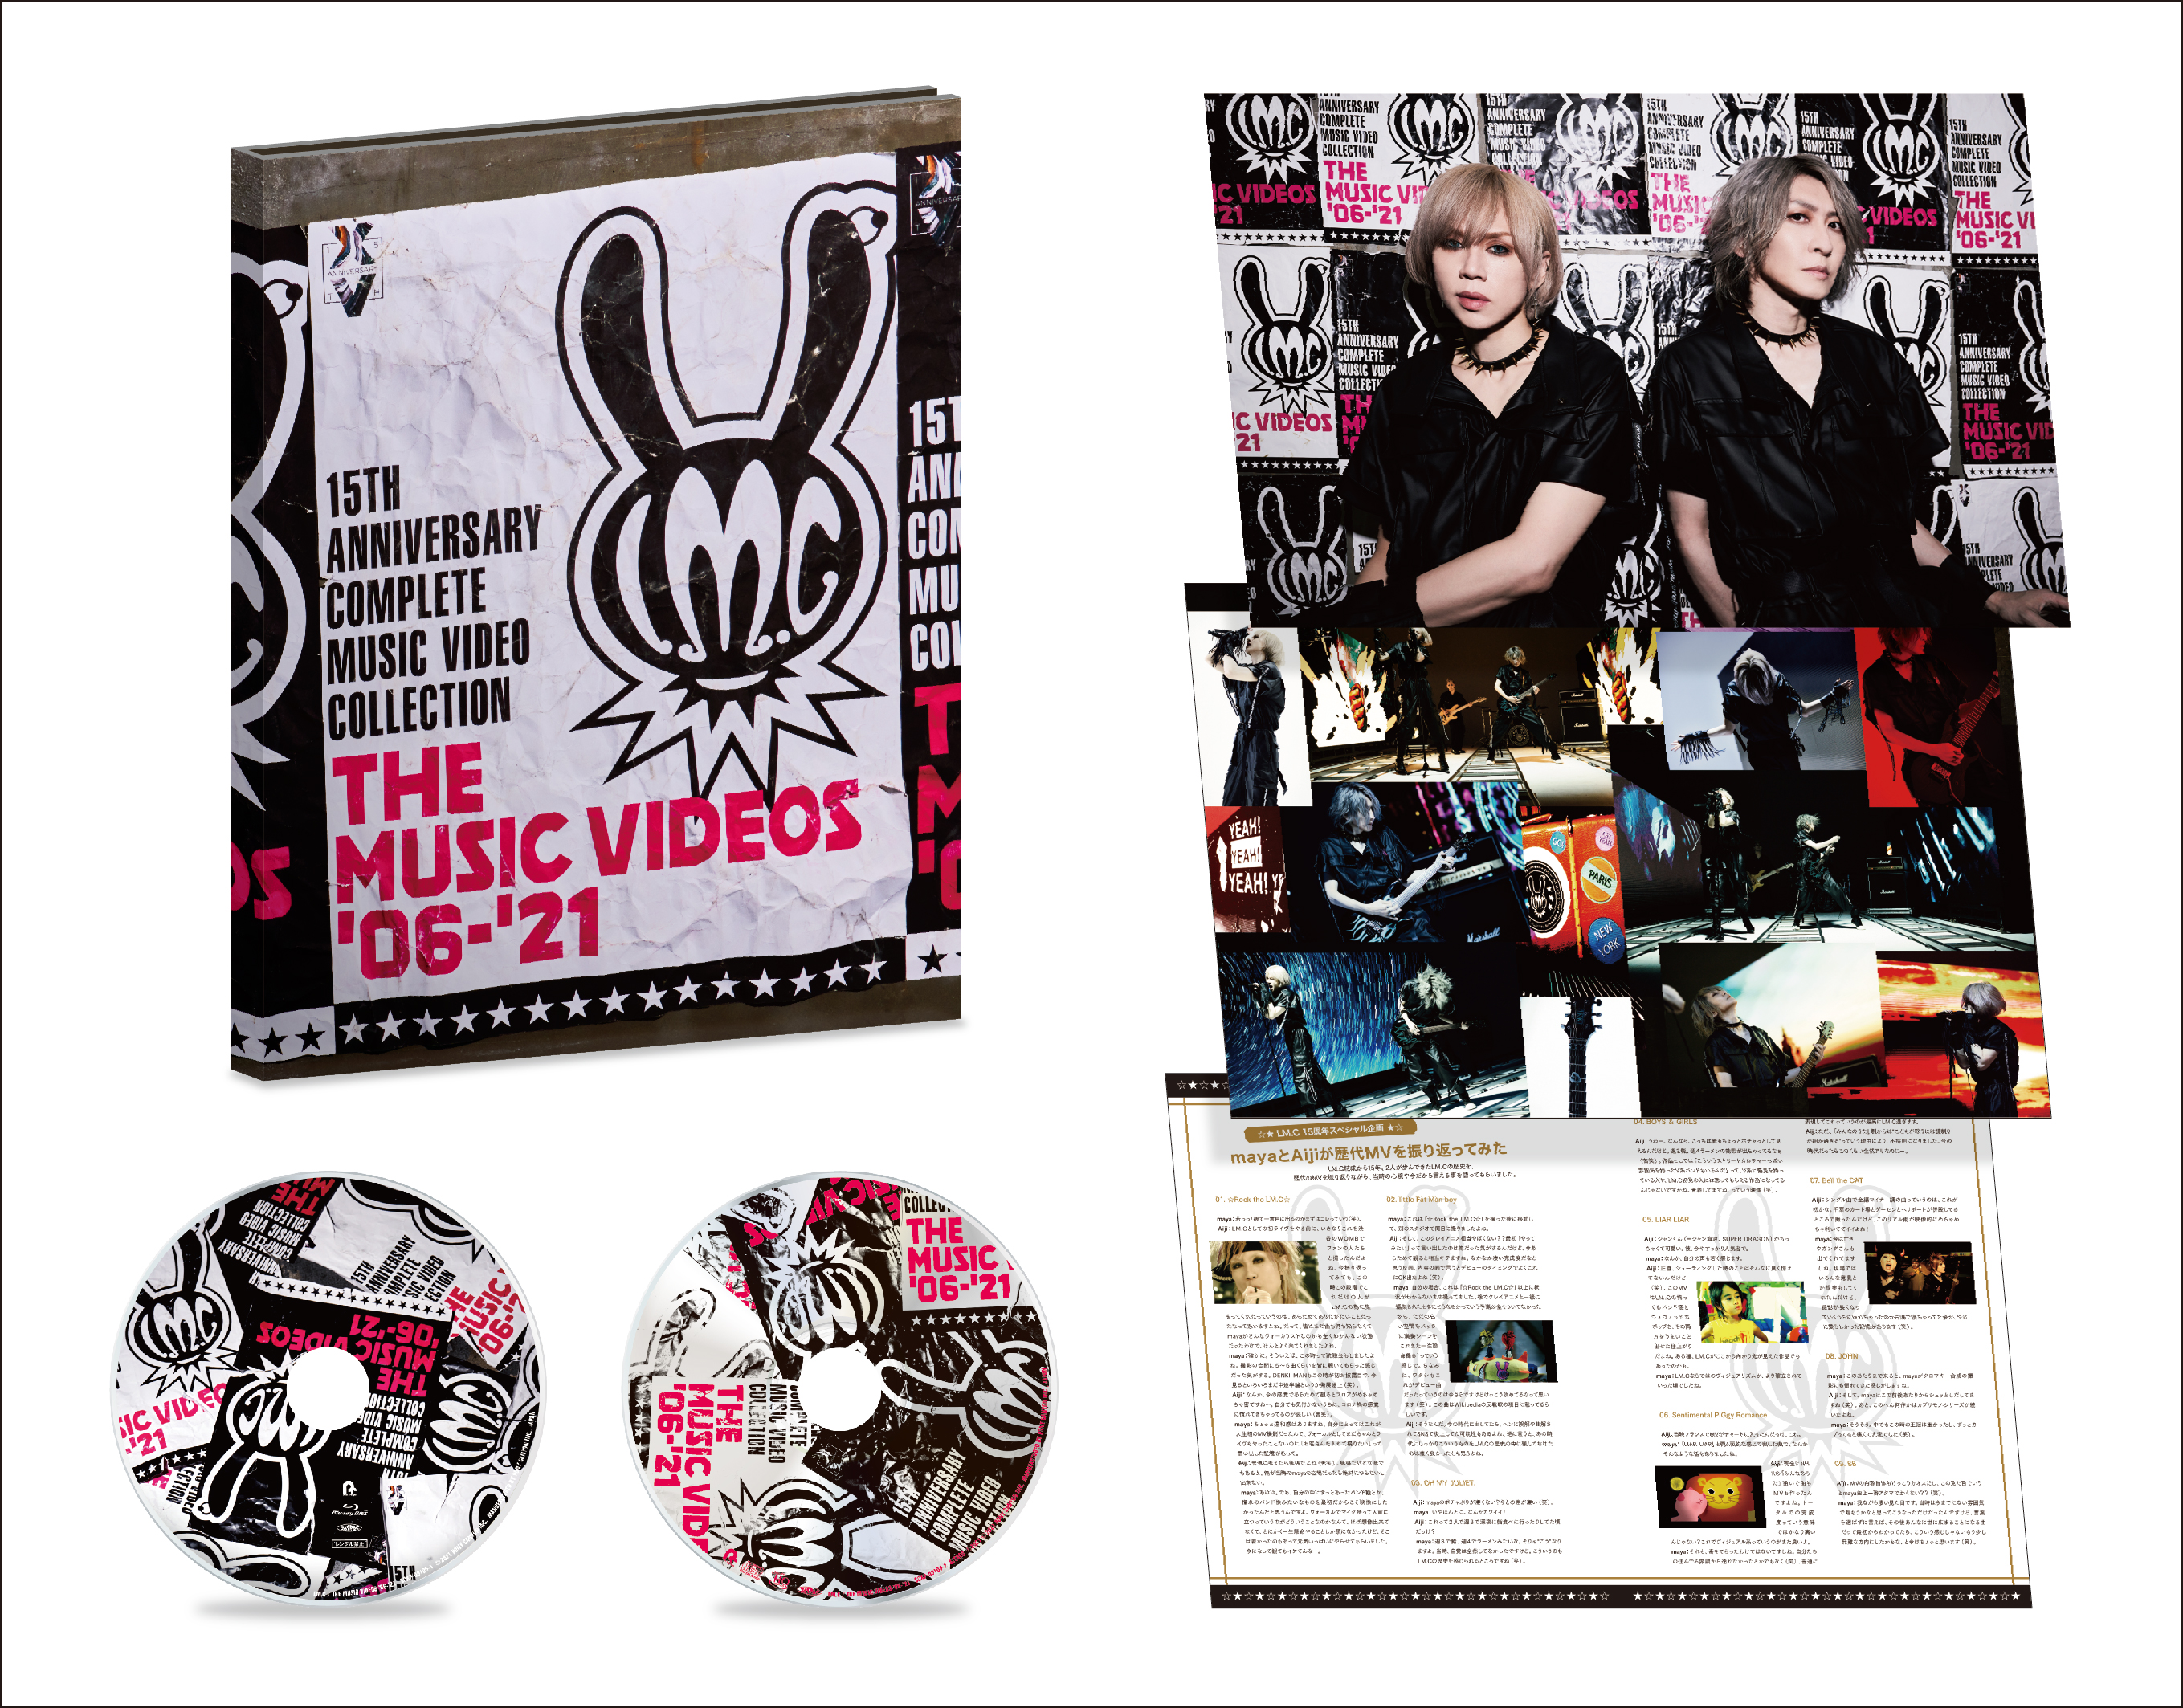 """LM.C 15th Anniversary Complete Music Video Collection""""THE MUSIC VIDEOS '06-'21"""" Blu-ray+CD Release on November 17th,2021 No.3"""